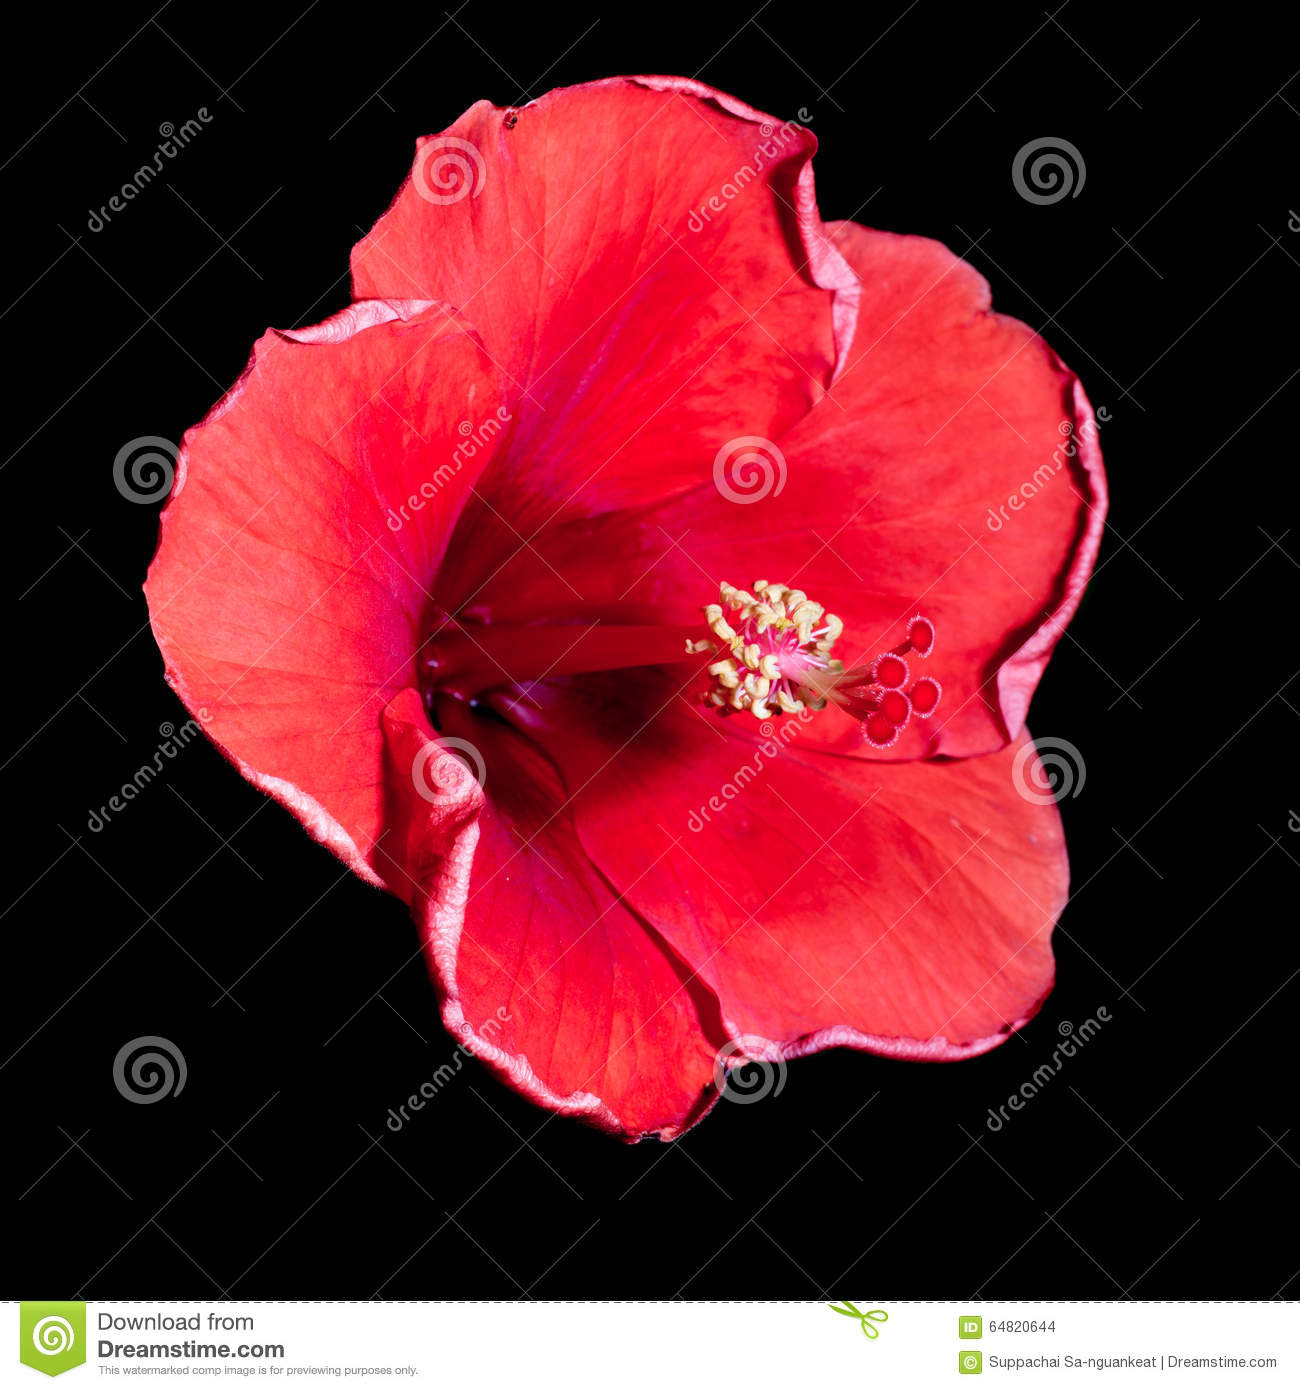 Red hibiscus flower on a black background stock photo image of download red hibiscus flower on a black background stock photo image of floral tropical izmirmasajfo